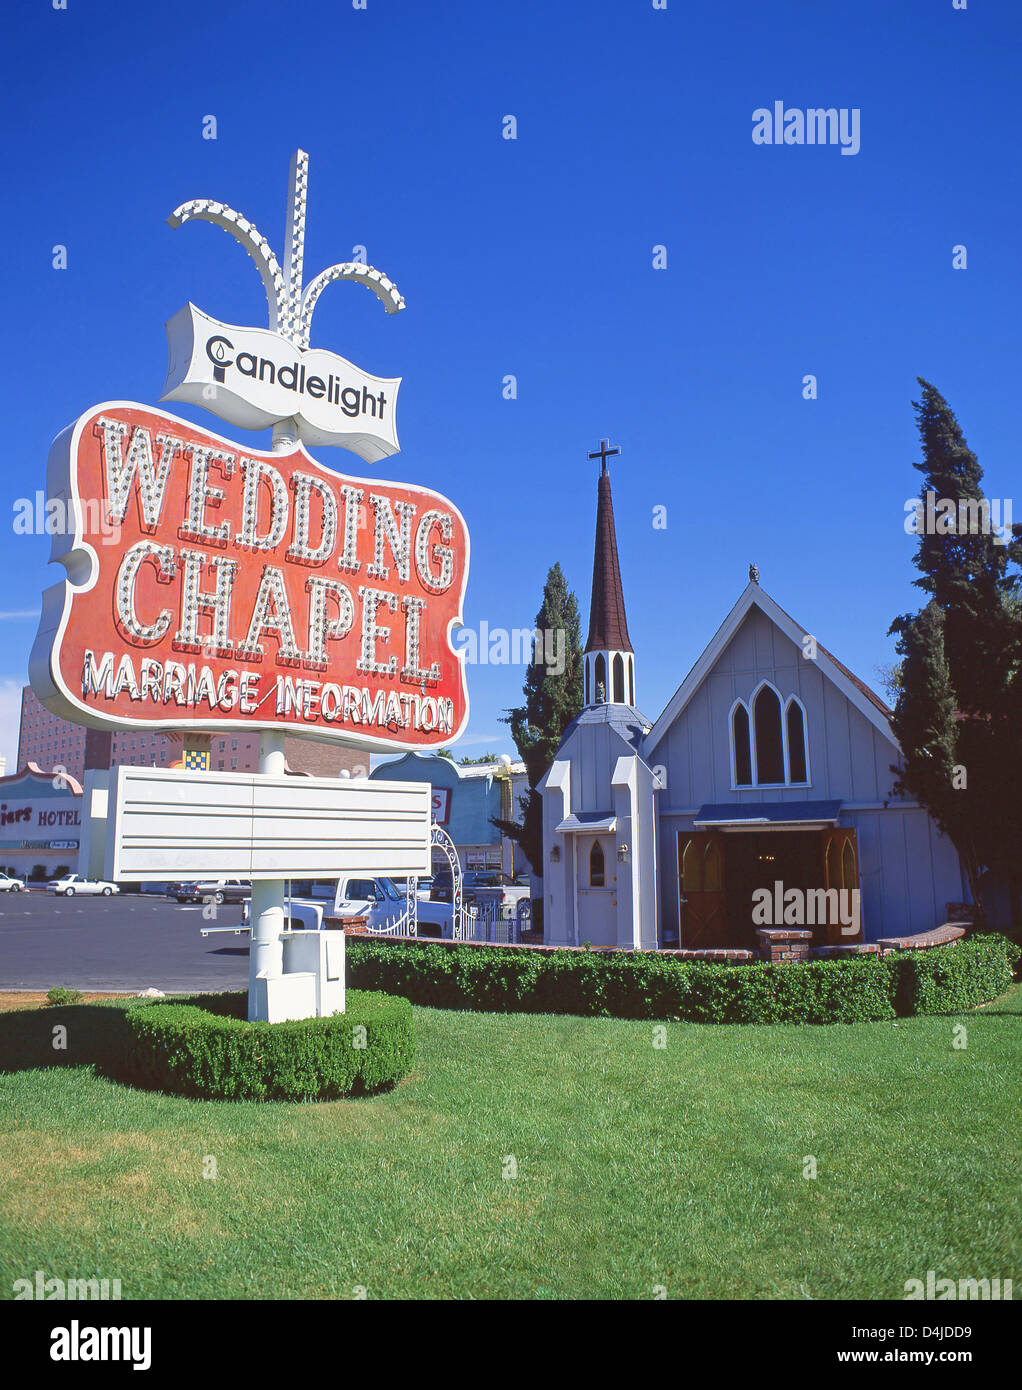 Candlelight Wedding Chapel On The Vegas Strip Las Vegas Nevada Stock Photo Royalty Free Image